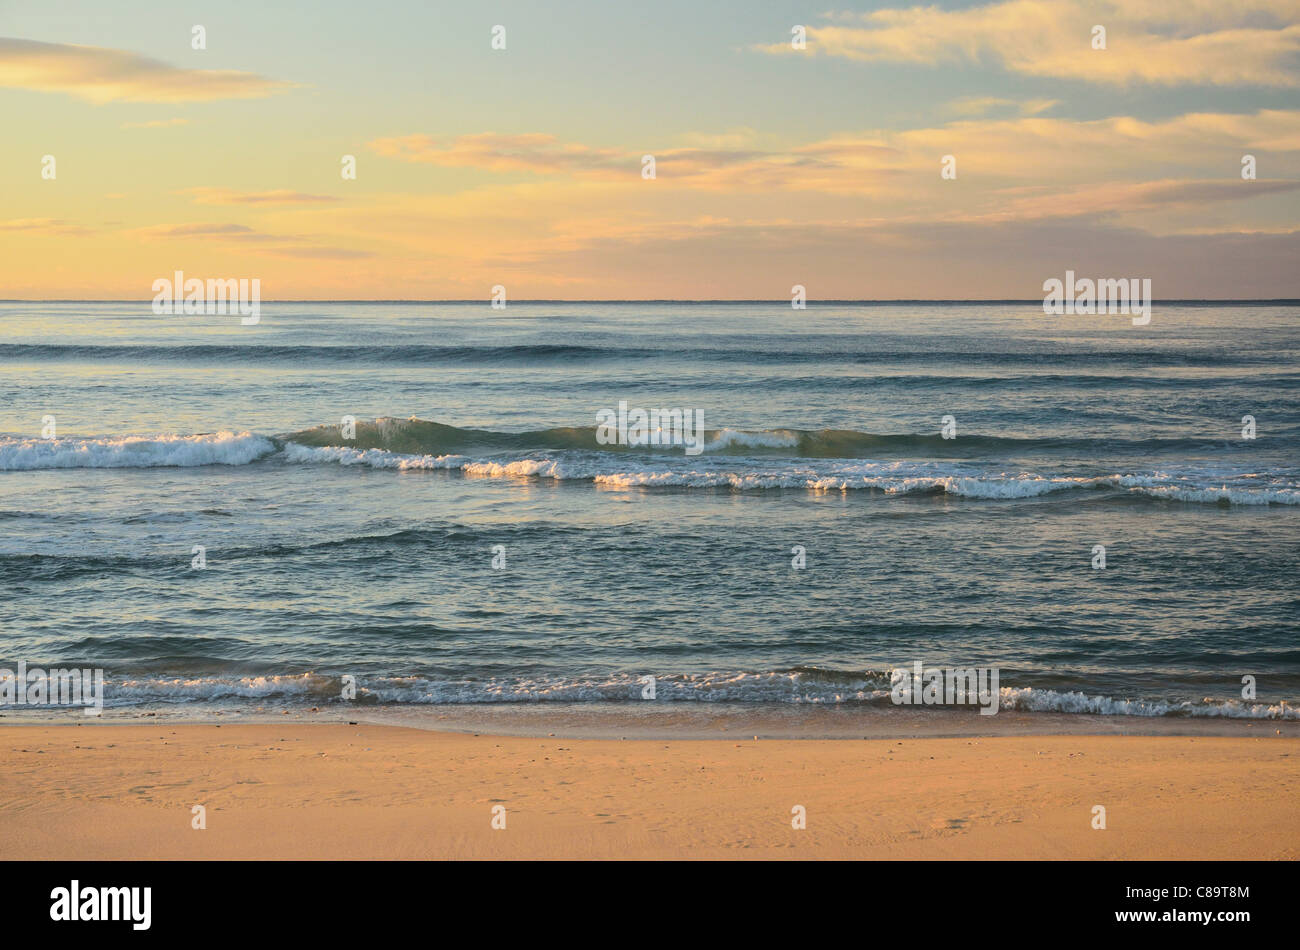 Australia, New South Wales, Bermagui, View of beach at dusk - Stock Image